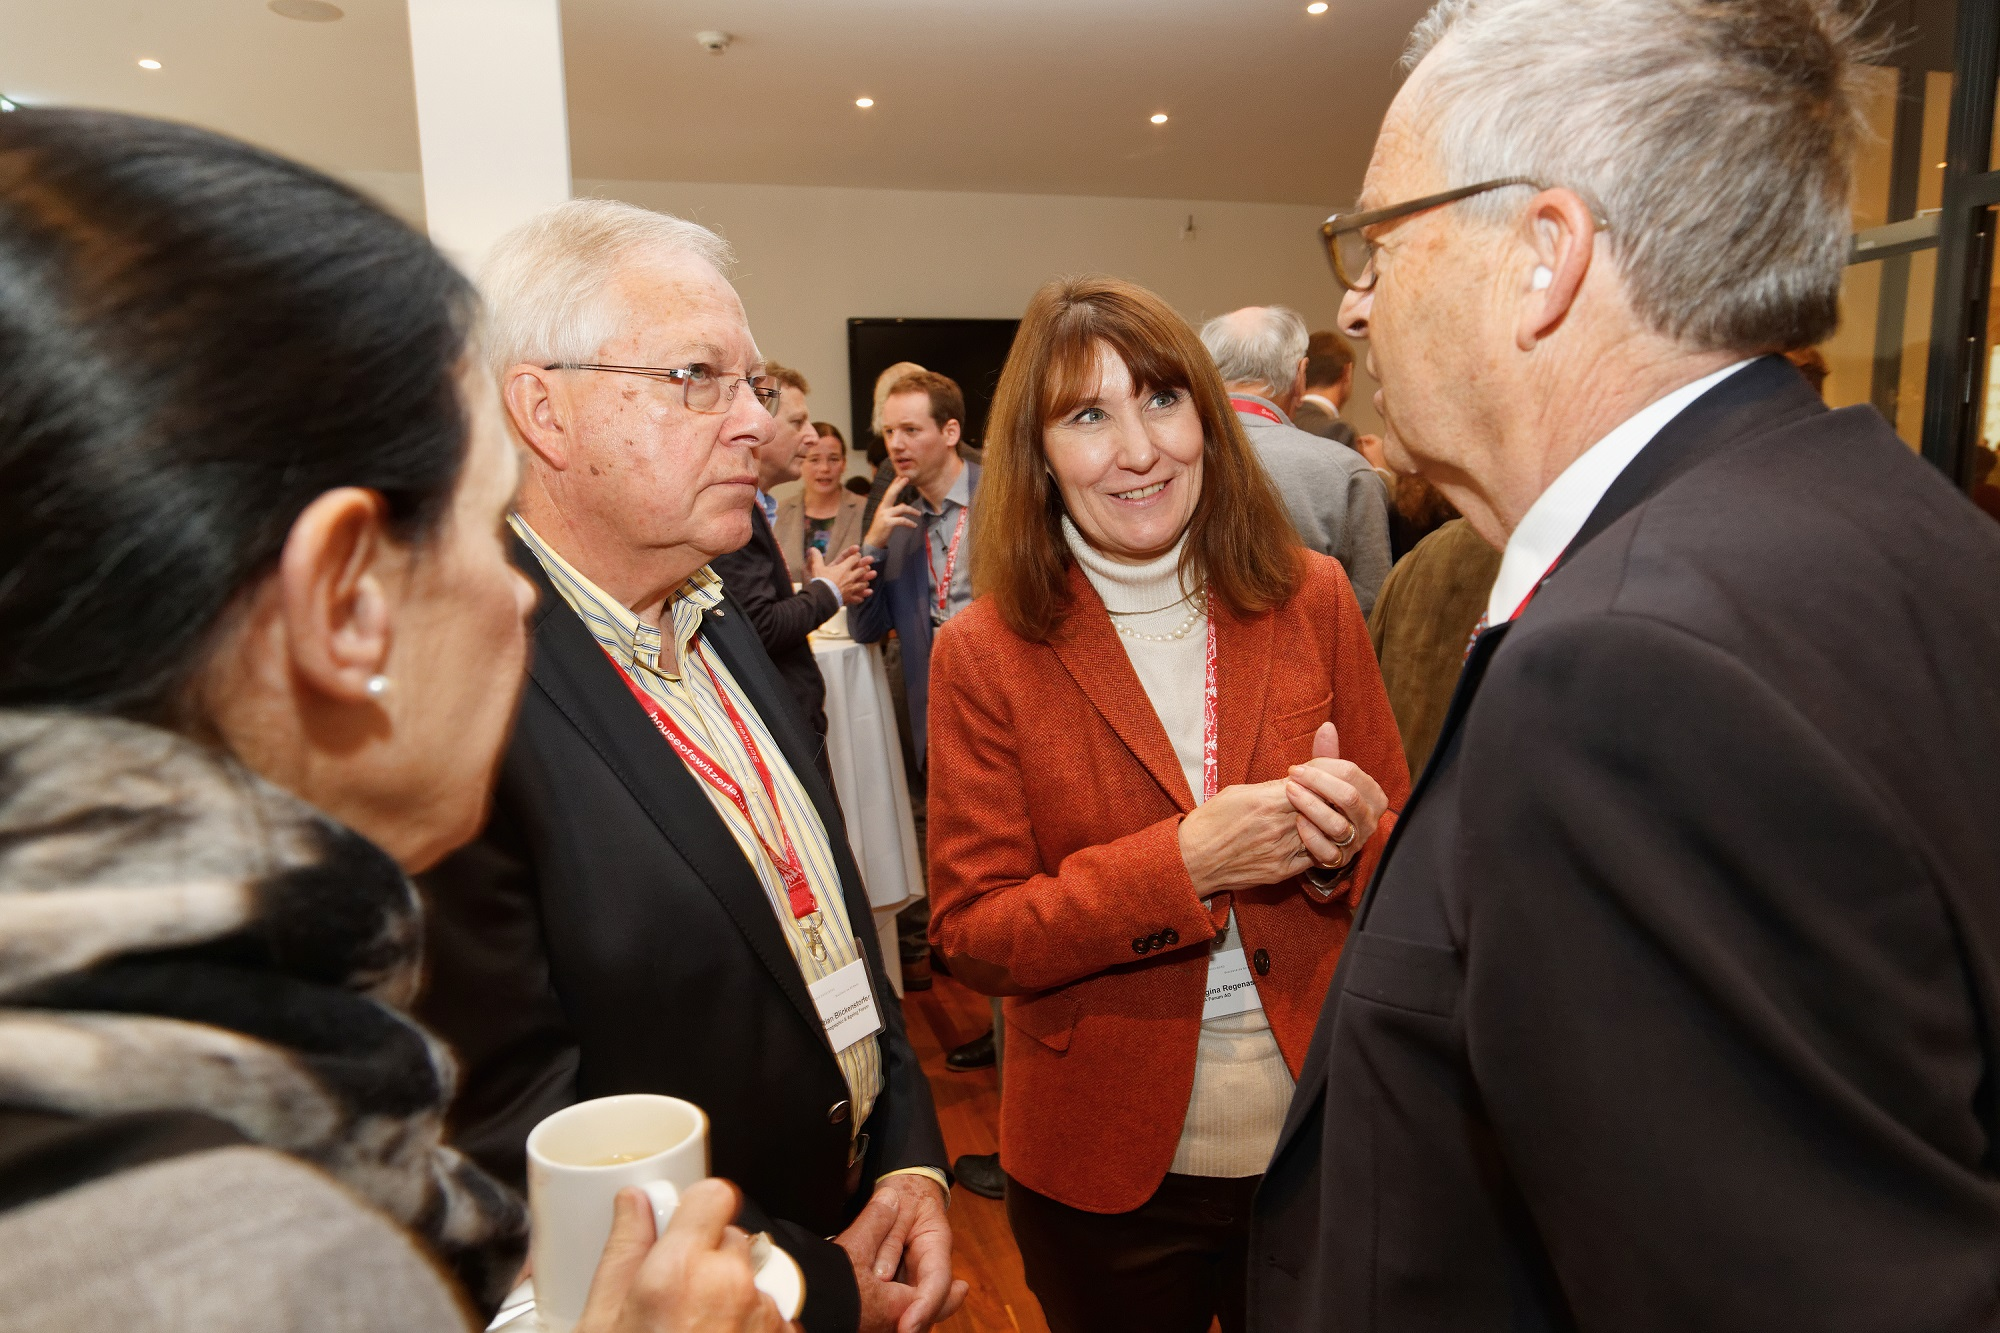 ENGELBERG/OW, 15. OKTOBER 2015 - 14. ACADEMIA ENGELBERG: 14. Wissenschaftsdialog Academia Engelberg zum Thema: 'Zukunftsfaehige Wirtschaftssysteme' im Kursaal Engelberg. ths/Photo by: E.T.STUDHALTER / ACADEMIA ENGELBERG ABRUCK HONORARFREI+++FREE OF CHARGE